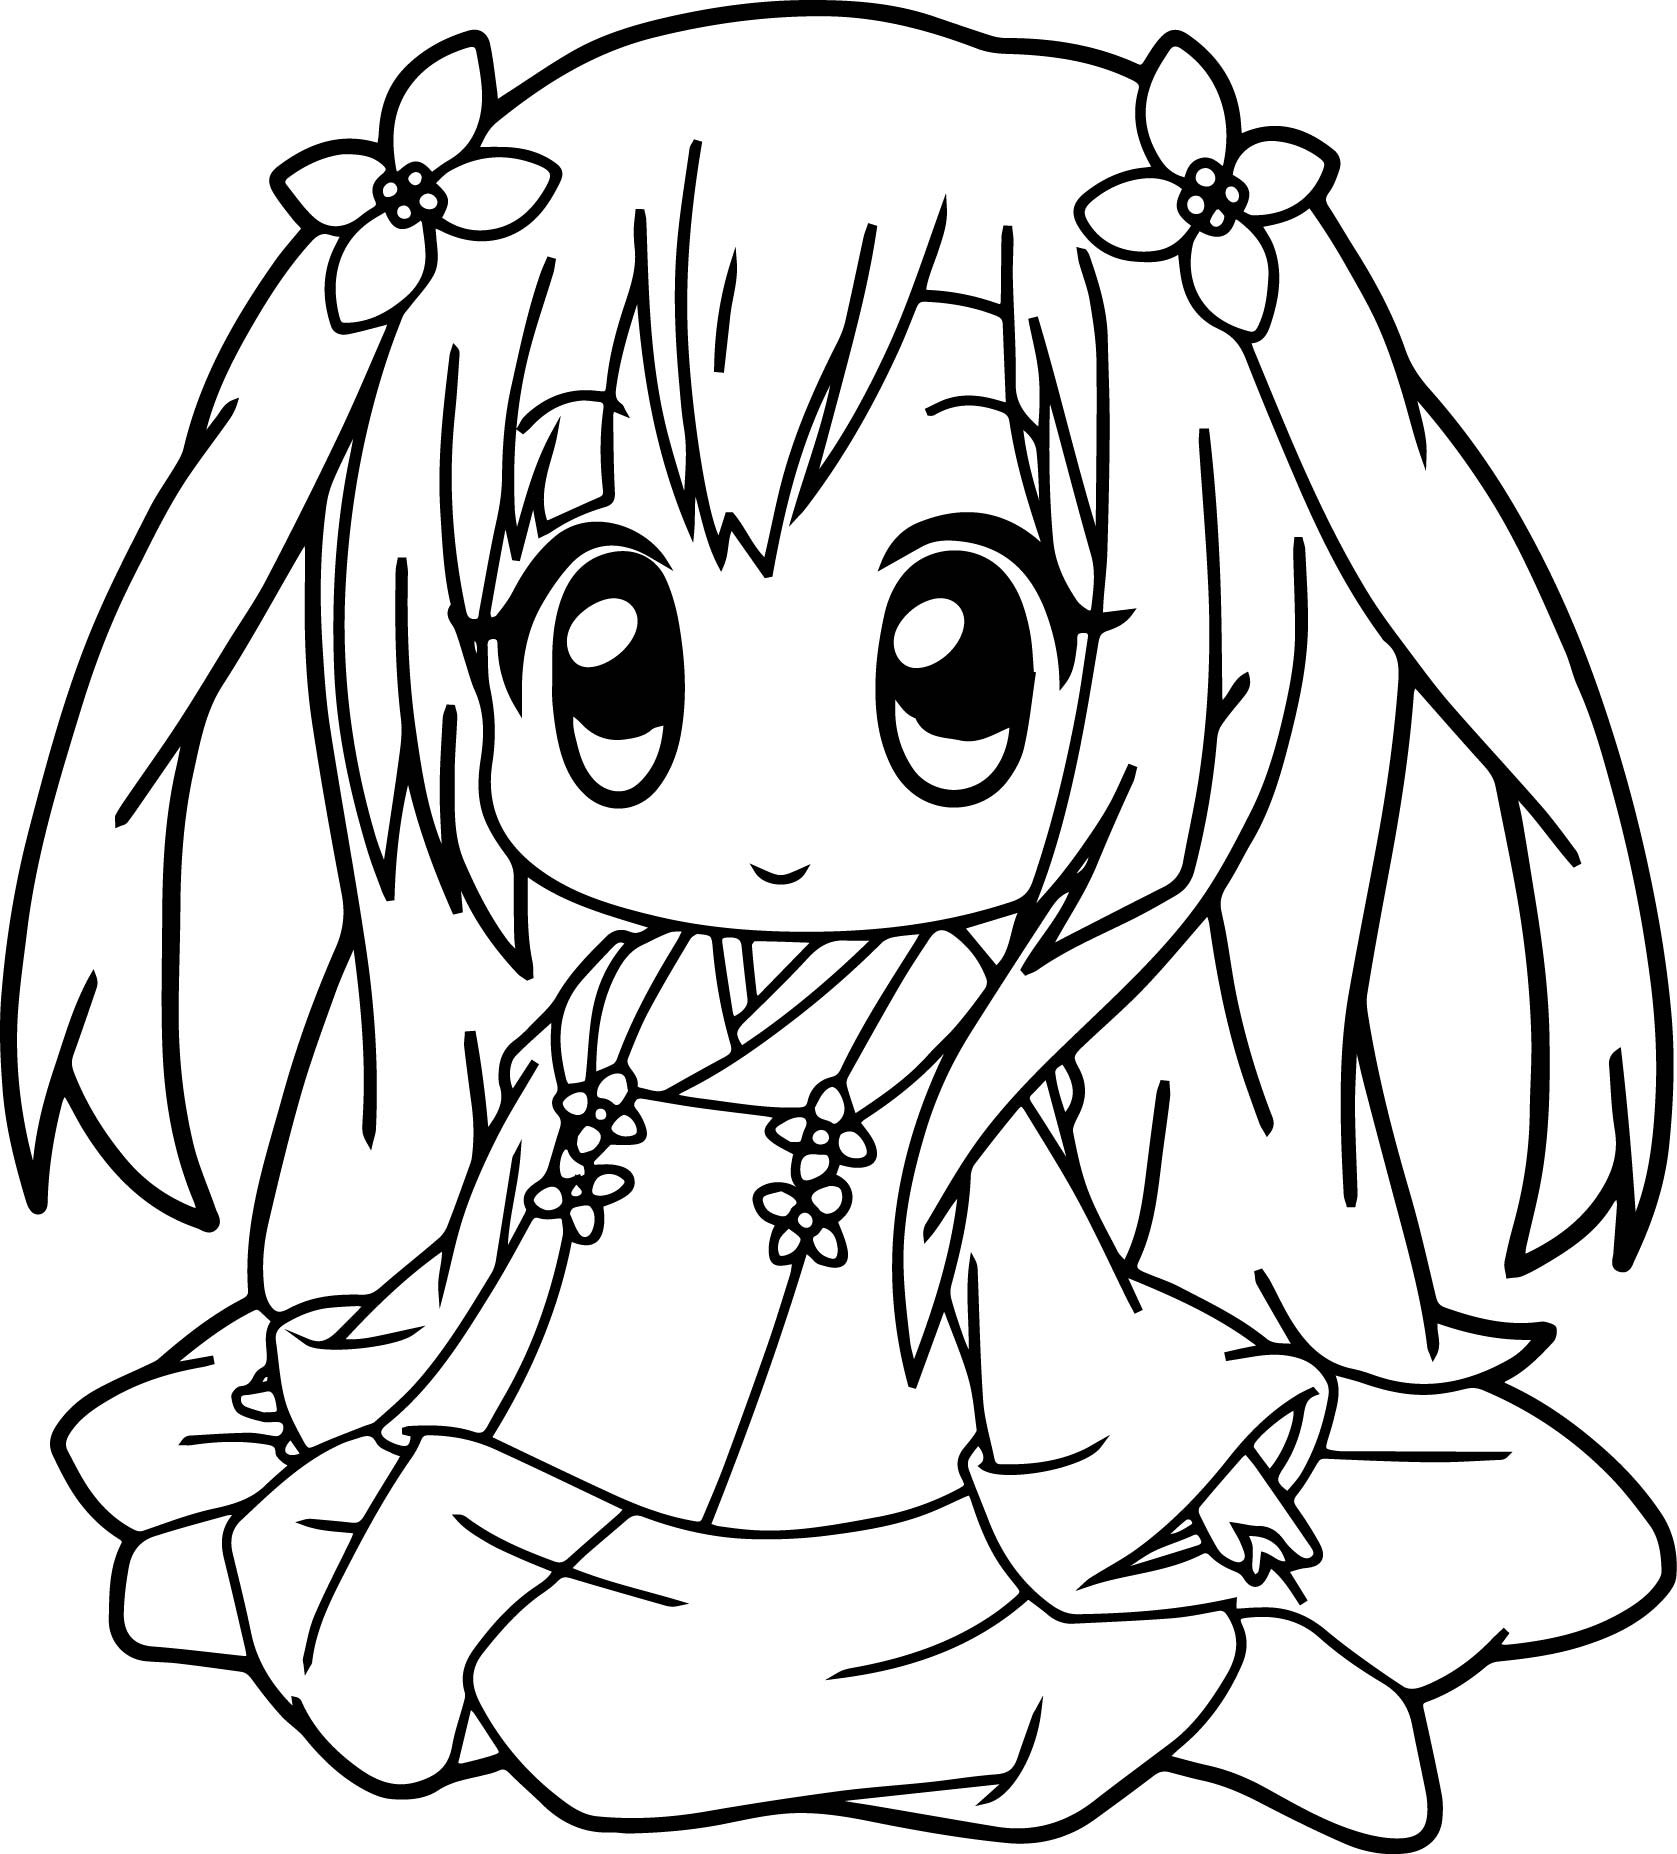 Anime Coloring Pages Printable  Anime Girl Coloring Pages coloringsuite